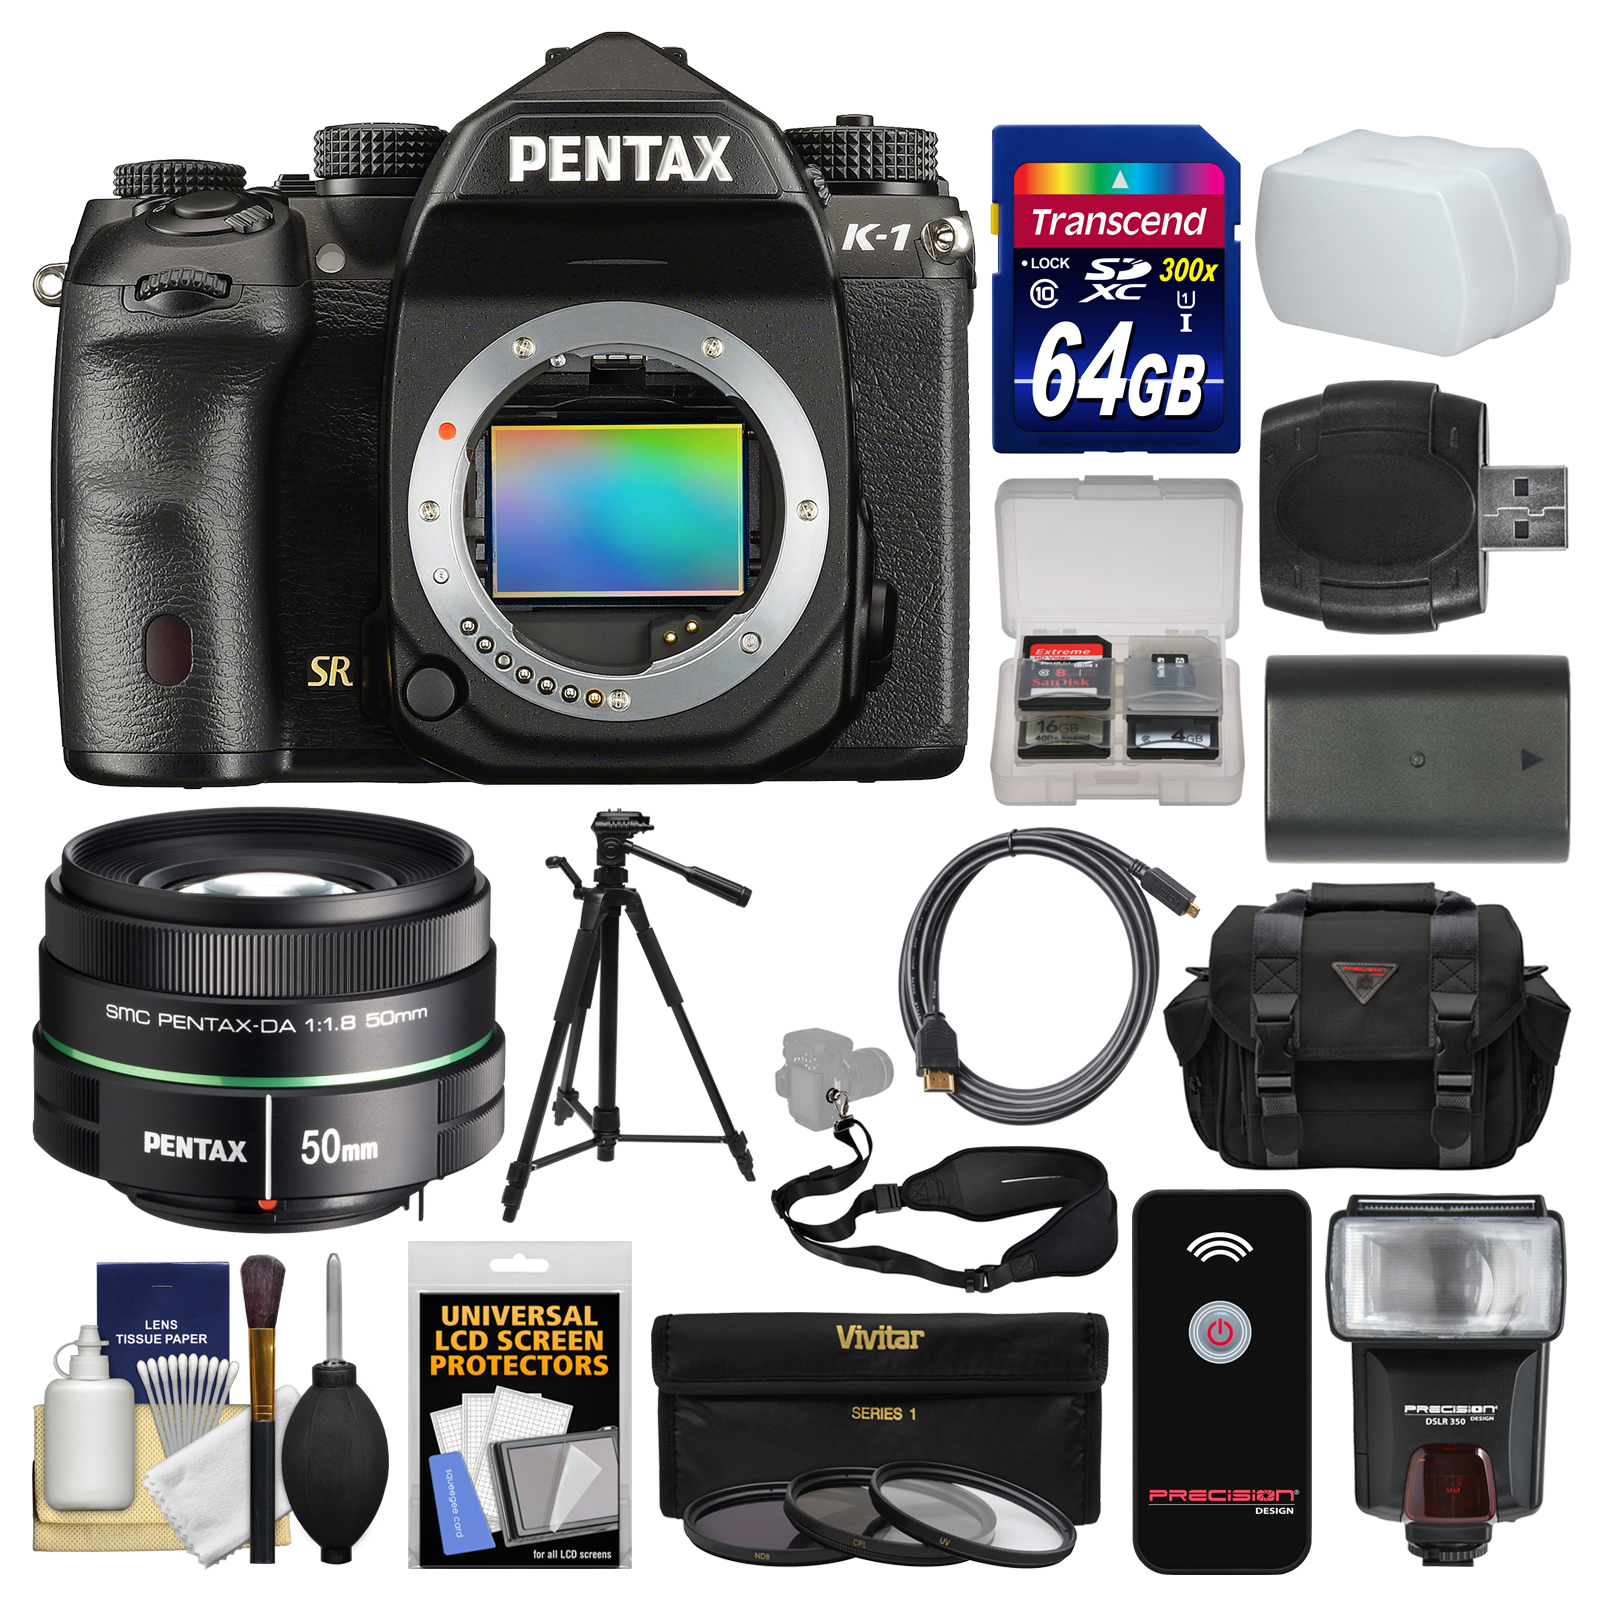 Pentax K-1 Full Frame Wi-Fi Digital SLR Camera Body with 50mm f 1.8 DA SMC Lens + 64GB Card + Case + Flash +... by Pentax